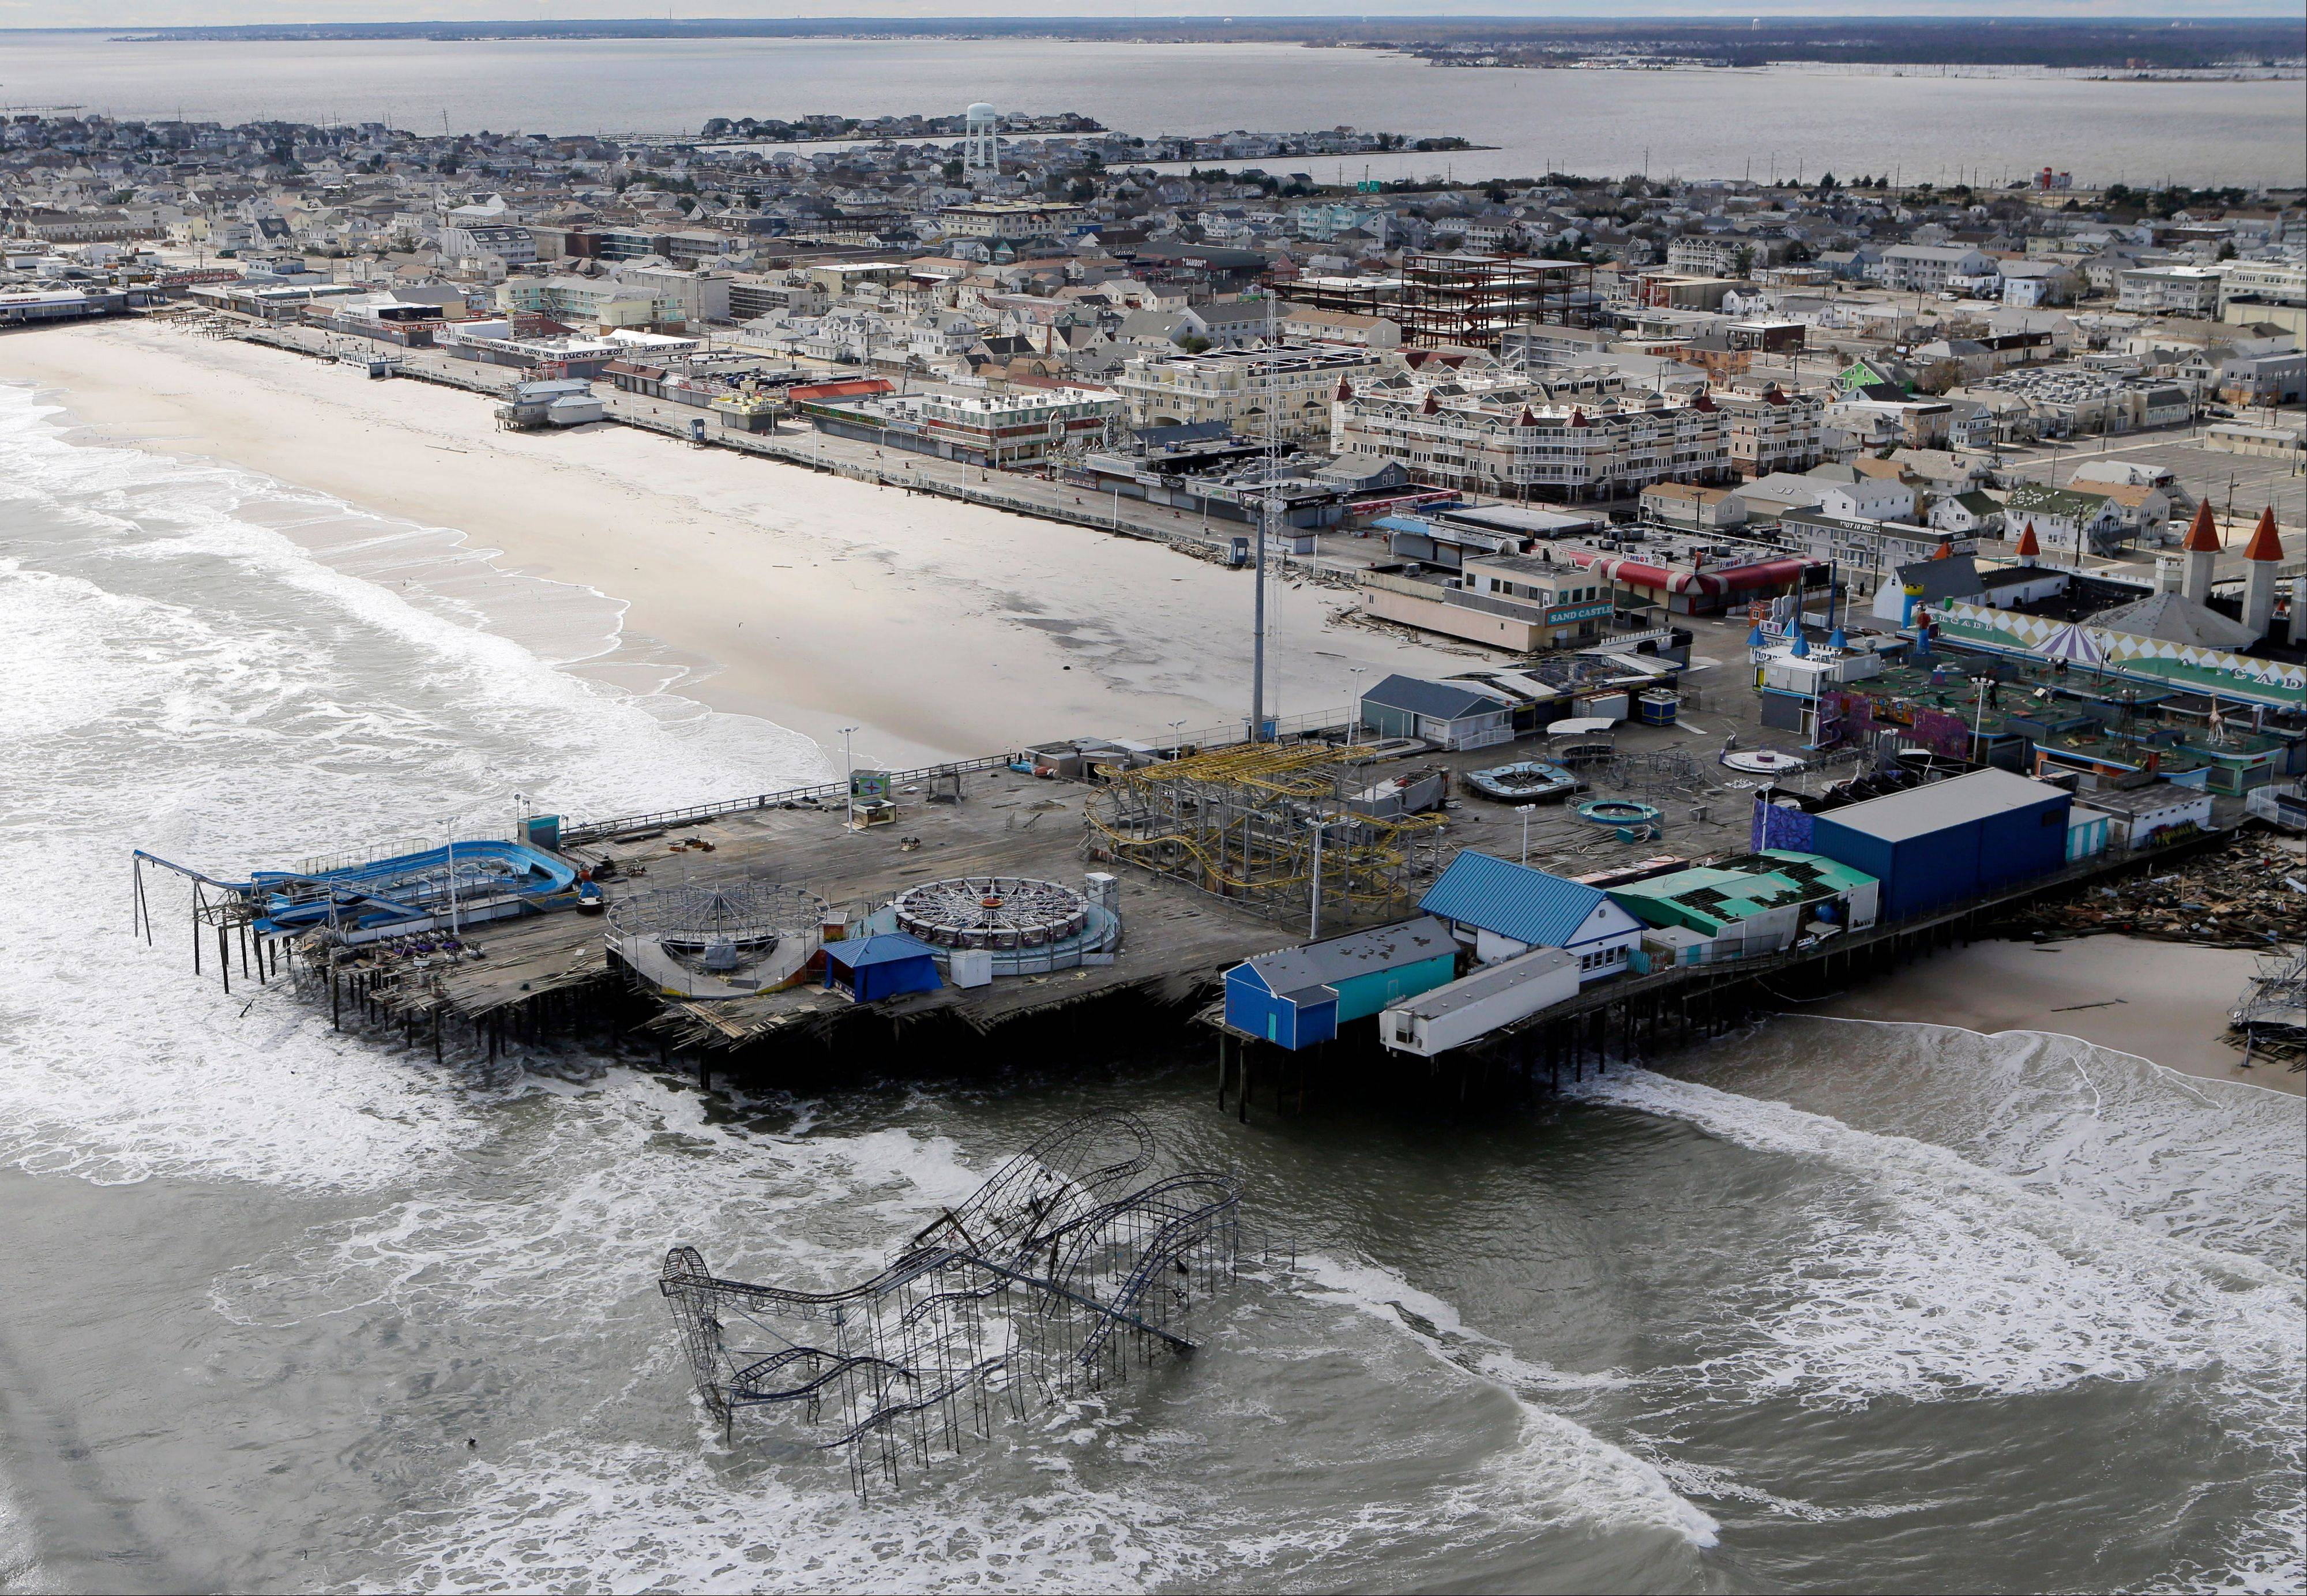 This aerial photo shows the damage to an amusement park in Seaside Heights, N.J., left in the wake of superstorm Sandy.